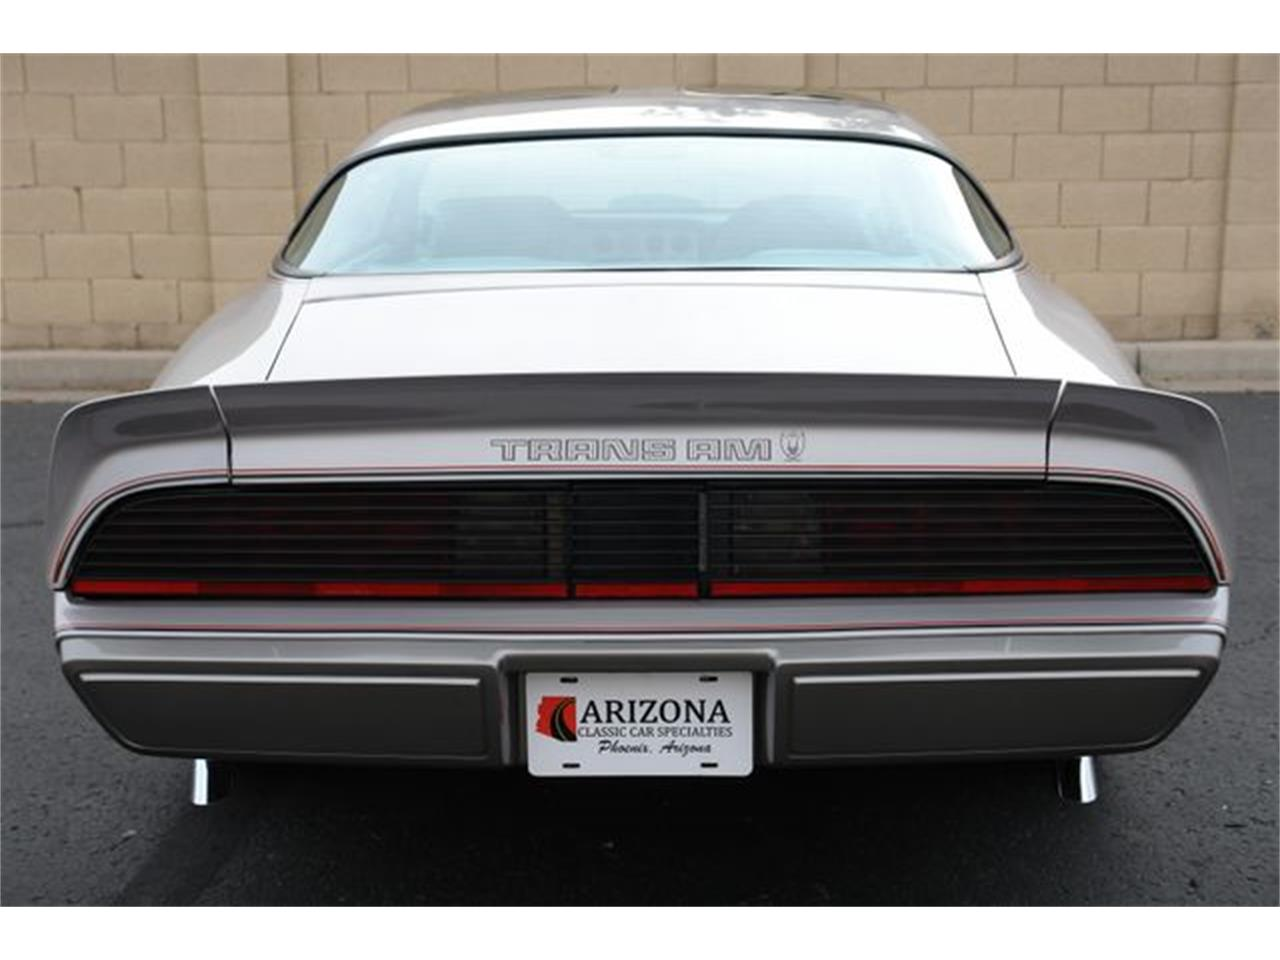 Large Picture of '79 Pontiac Firebird Trans Am located in Arizona - $38,950.00 Offered by Arizona Classic Car Sales - Q64G